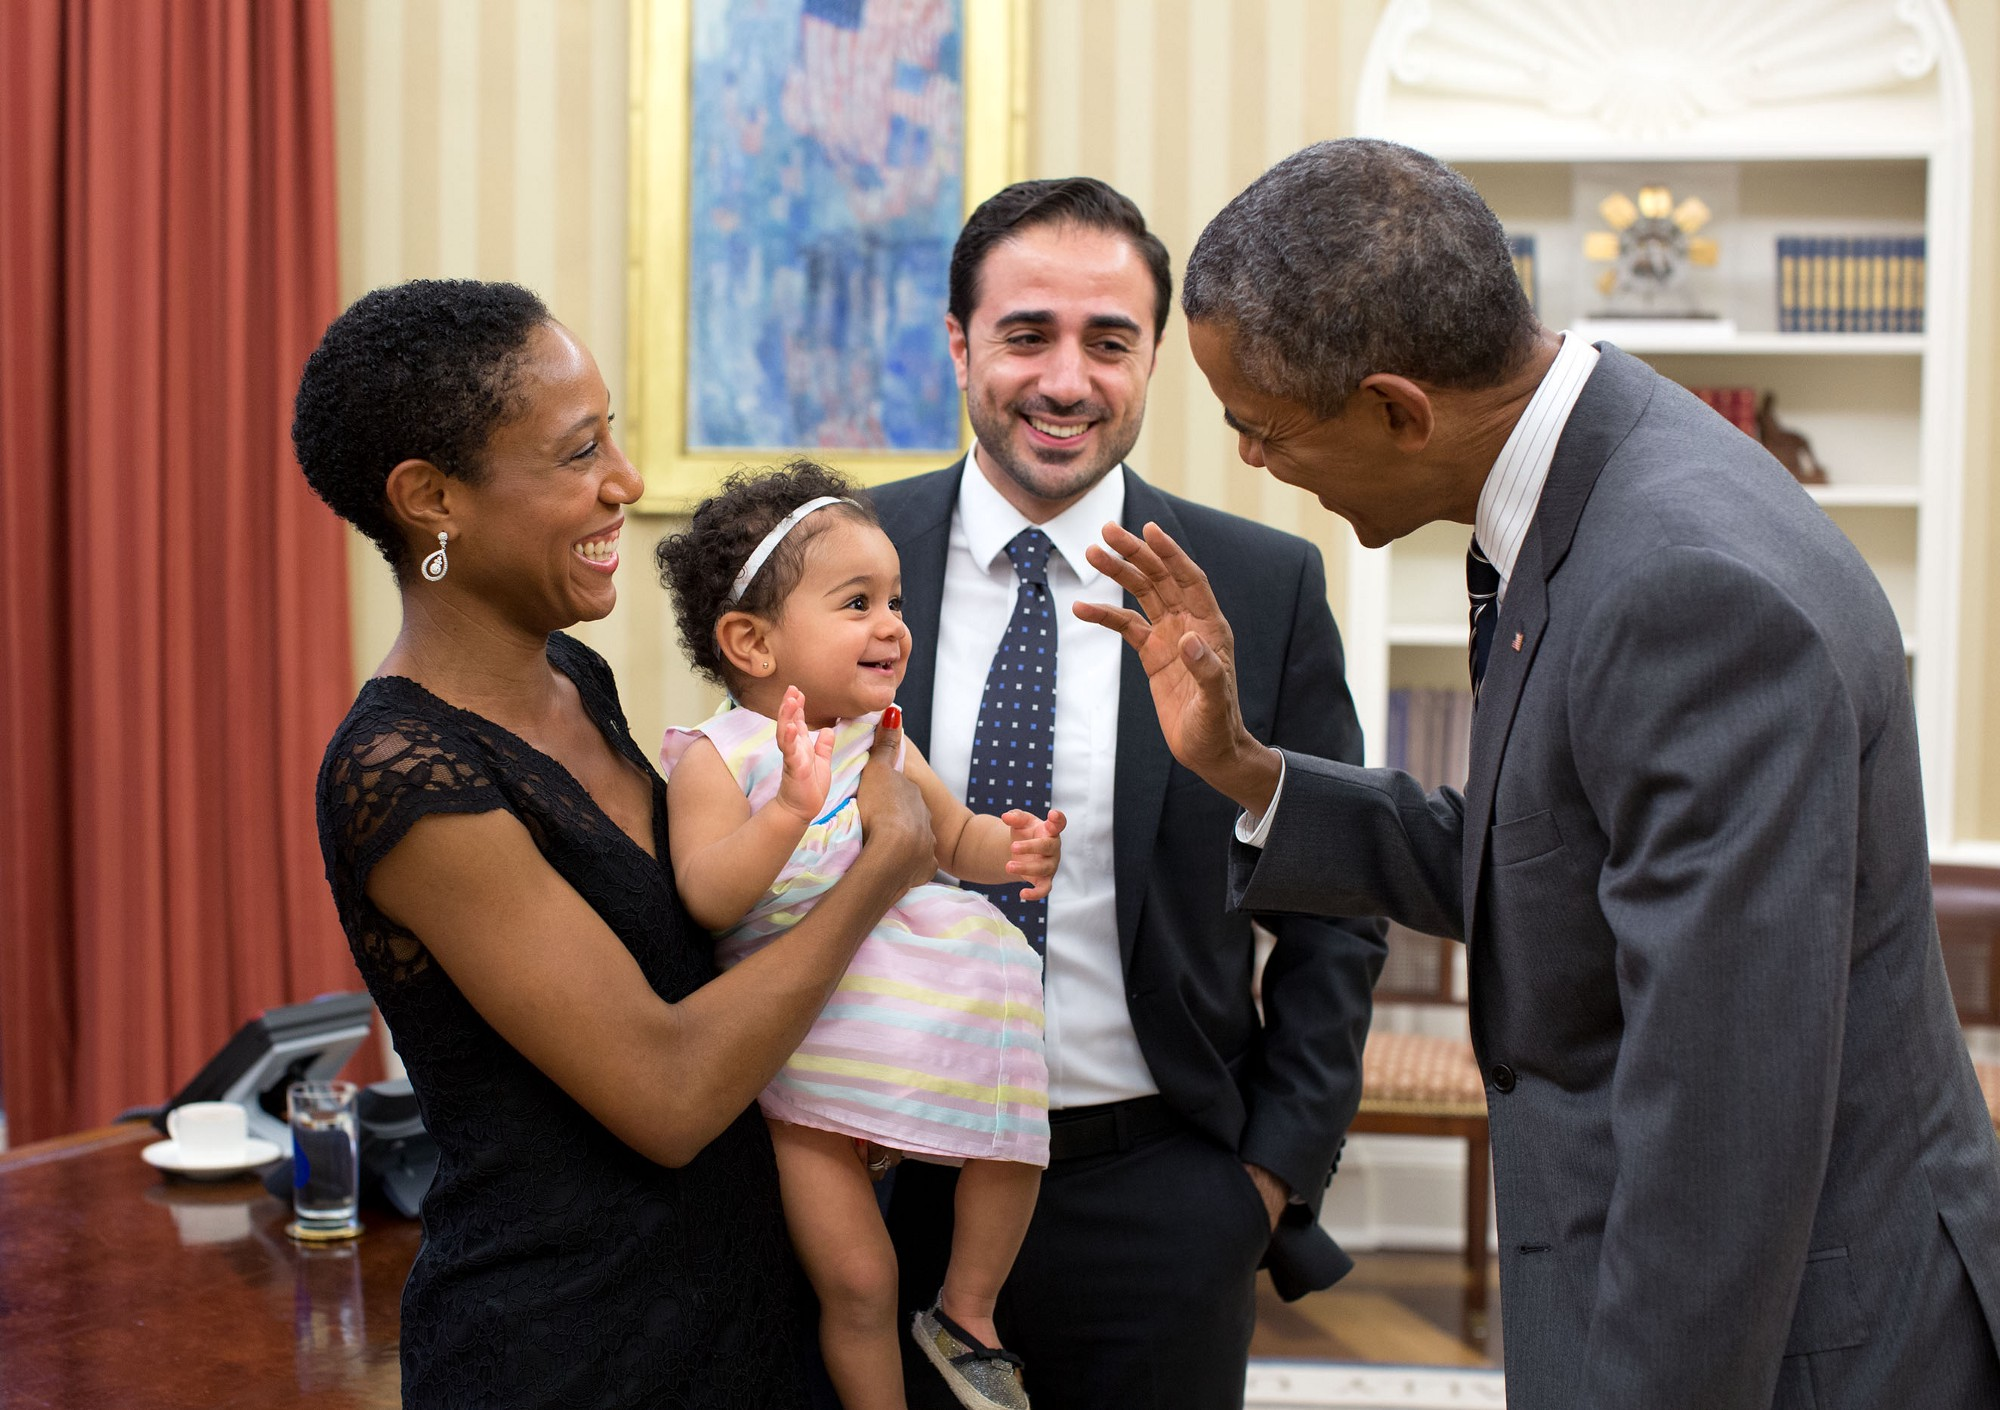 "Sept. 21, 2015 ""The President exchanges a wave with Alya Dorelien Bitar, one-year-old daughter of Maher Bitar, the outgoing National Security Council Director for Israeli and Palestinian Affairs, and his wife, Astrid Dorelien, during a family photo in the Oval Office."" (Official White House Photo by Pete Souza)"